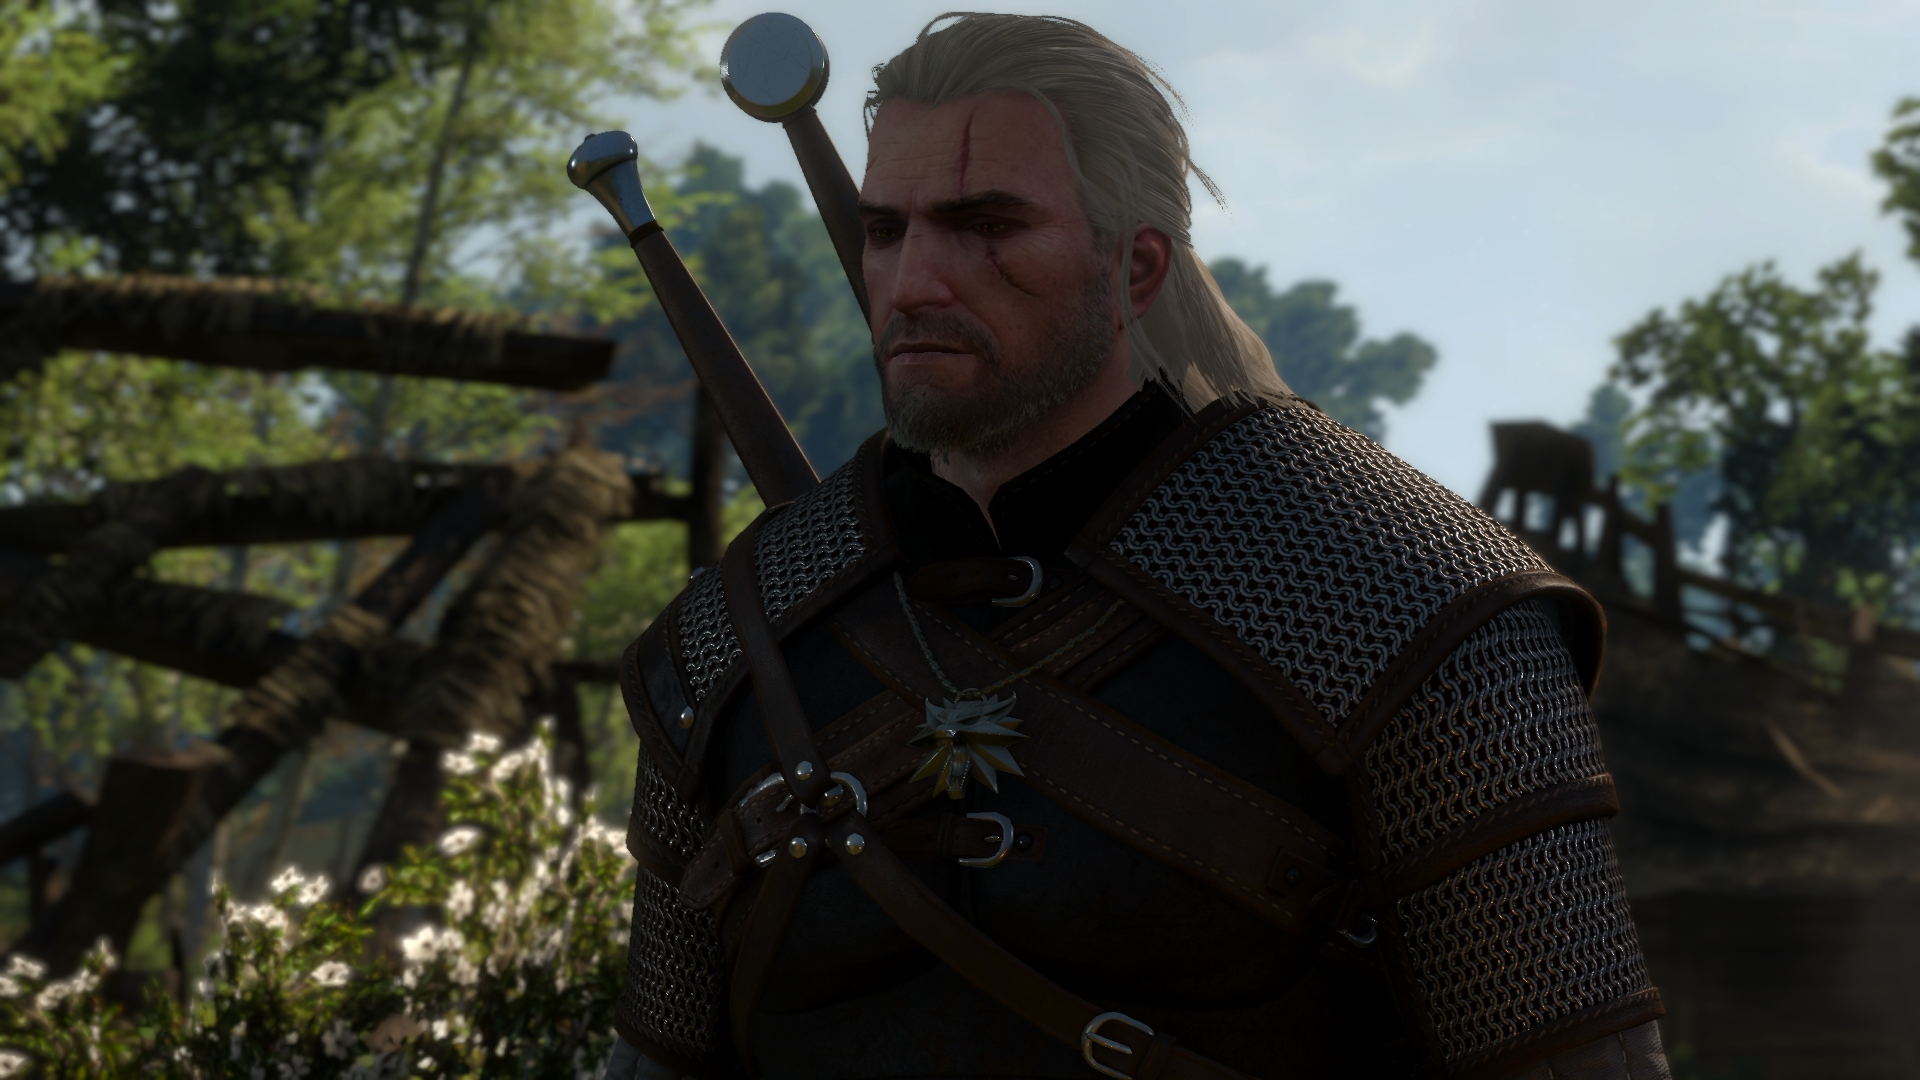 witcher3 2016-06-10 04-38-53-55.jpg - Witcher 3: Wild Hunt, the